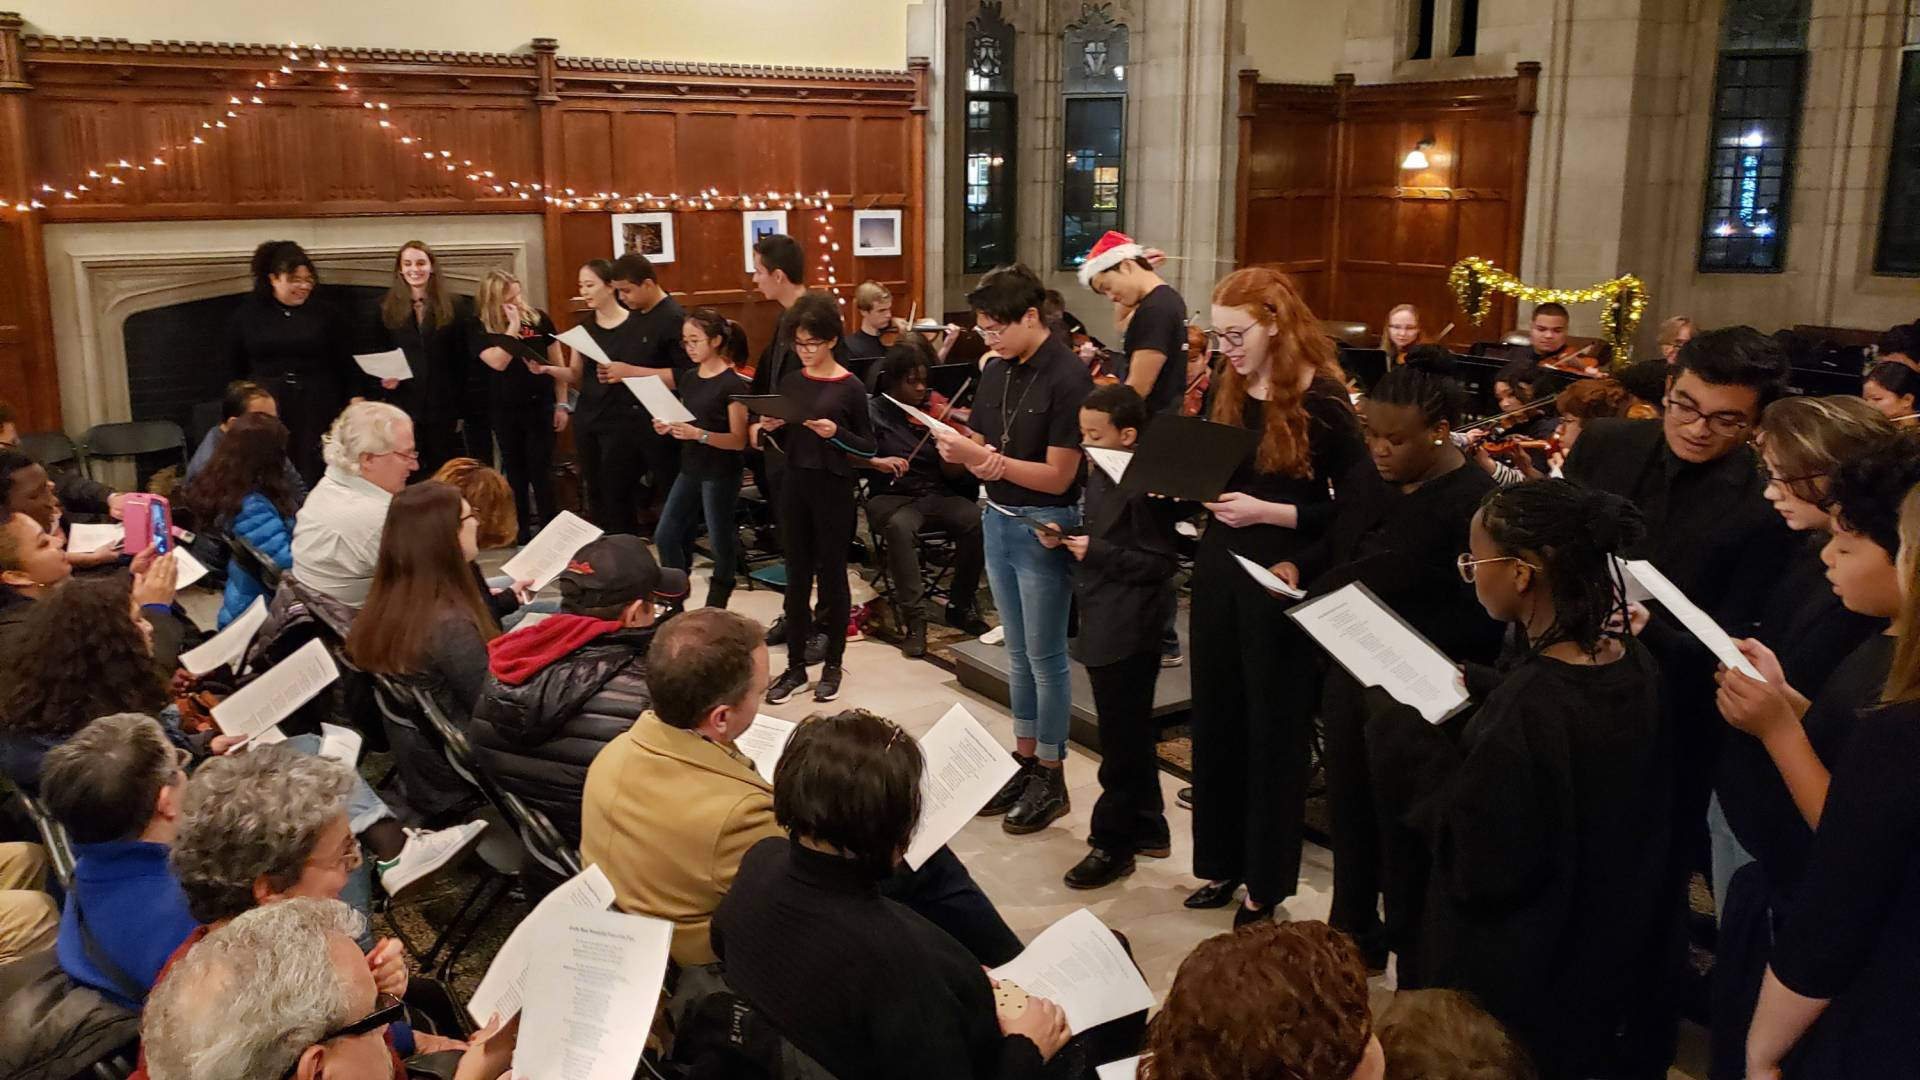 Trenton Arts Program holiday concert